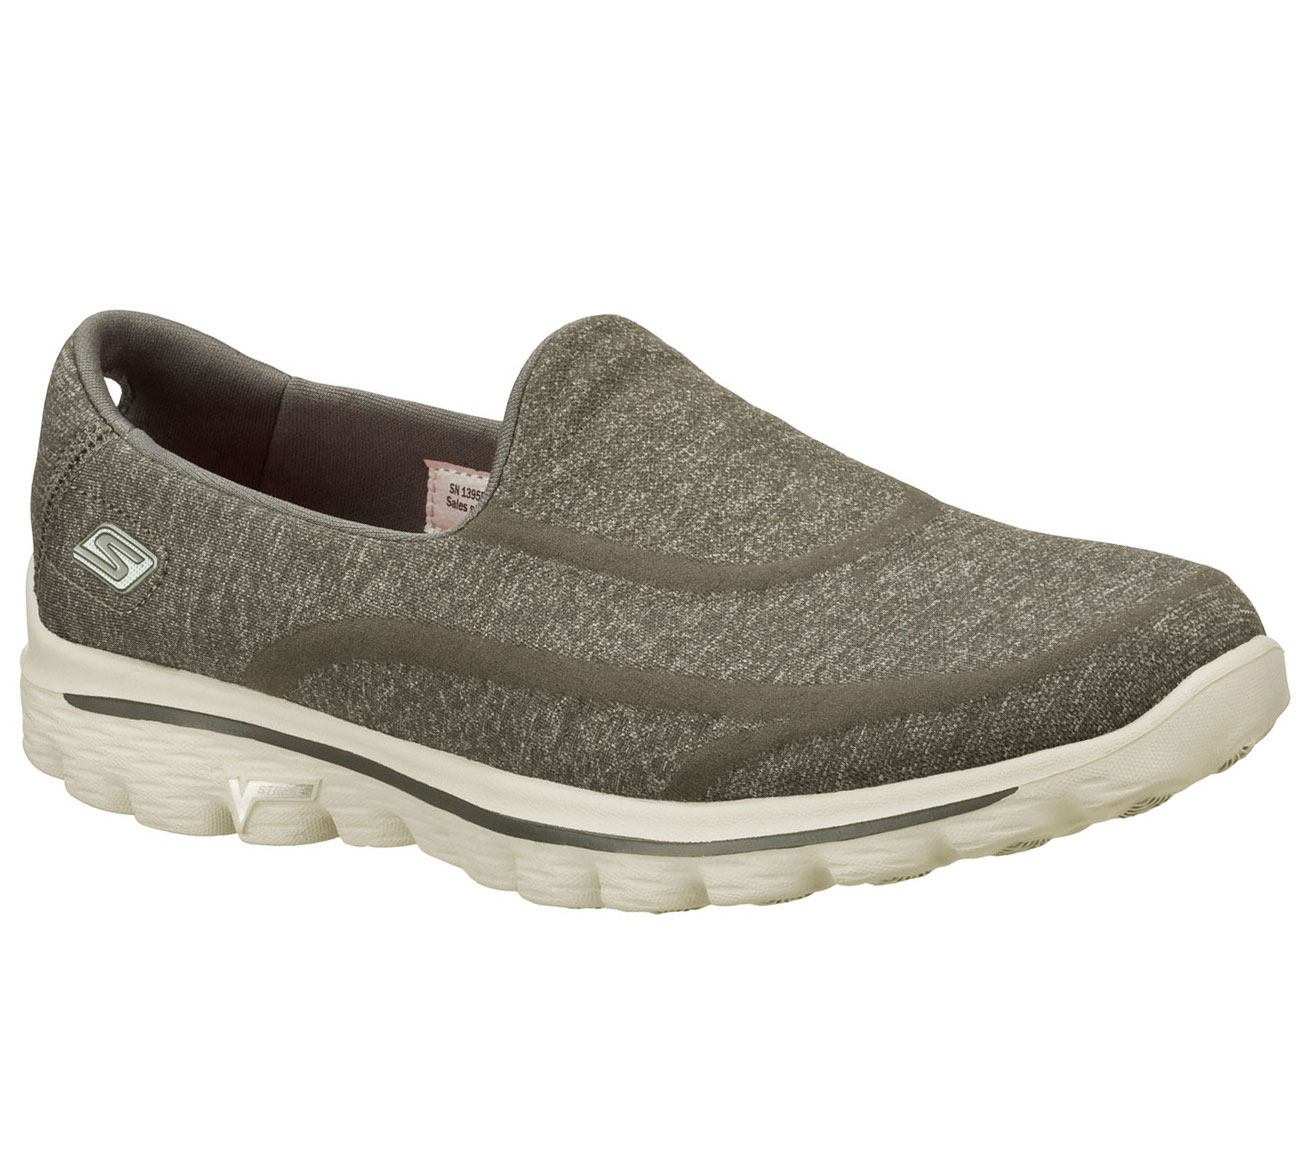 Skechers Newman Pazzo Mens Slip On Shoes